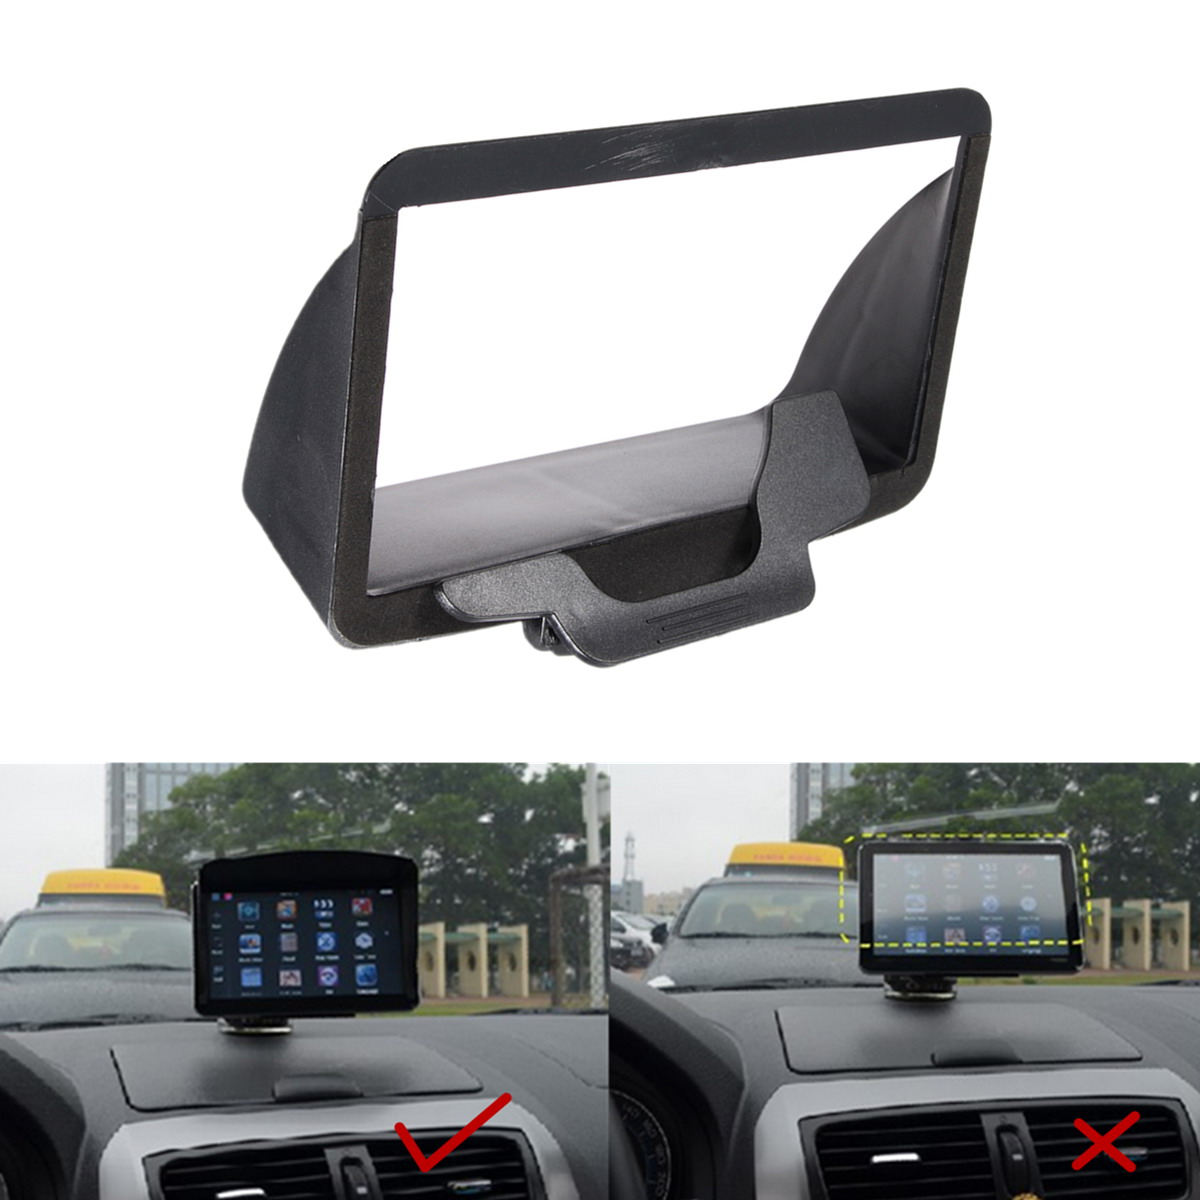 US $2 73 19% OFF|ANENG New High Quality Sun Shade Visor Screen For TomTom  Go 60 Go 600 Go 6000 Sat Nav GPS 4 3 / 5 INCH Accessories-in Cables,